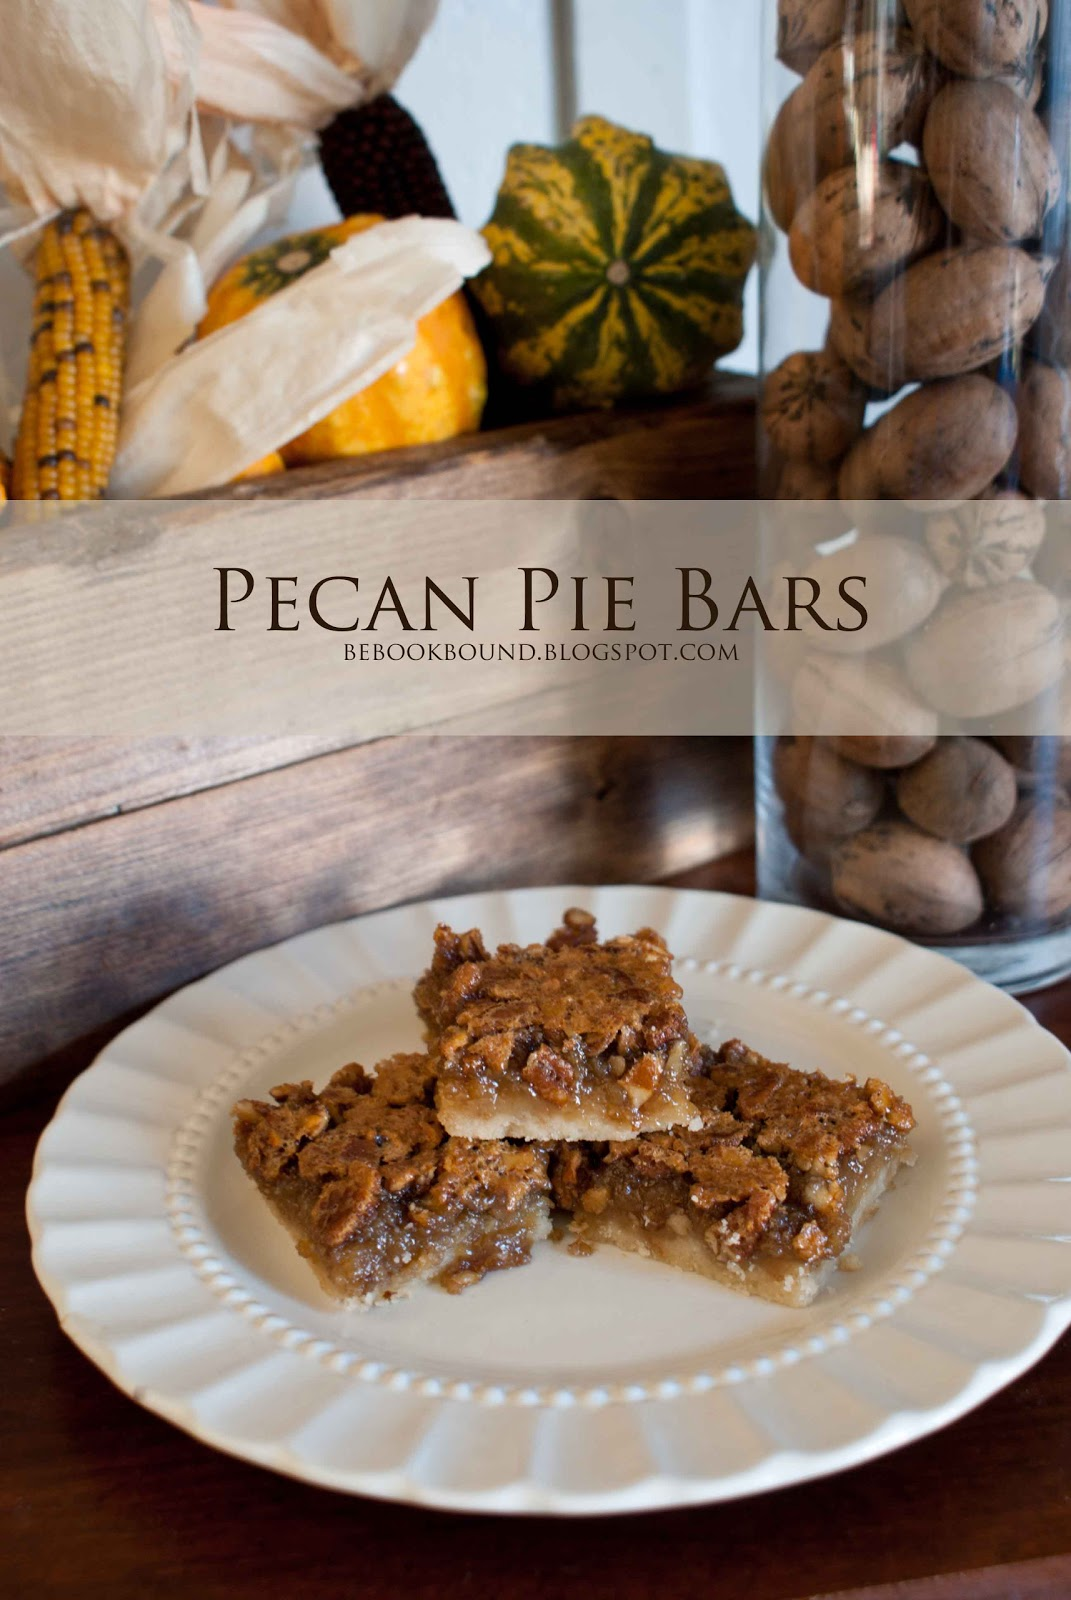 Be Book Bound: Edgar Allan Poe October: Pecan Pie Bars